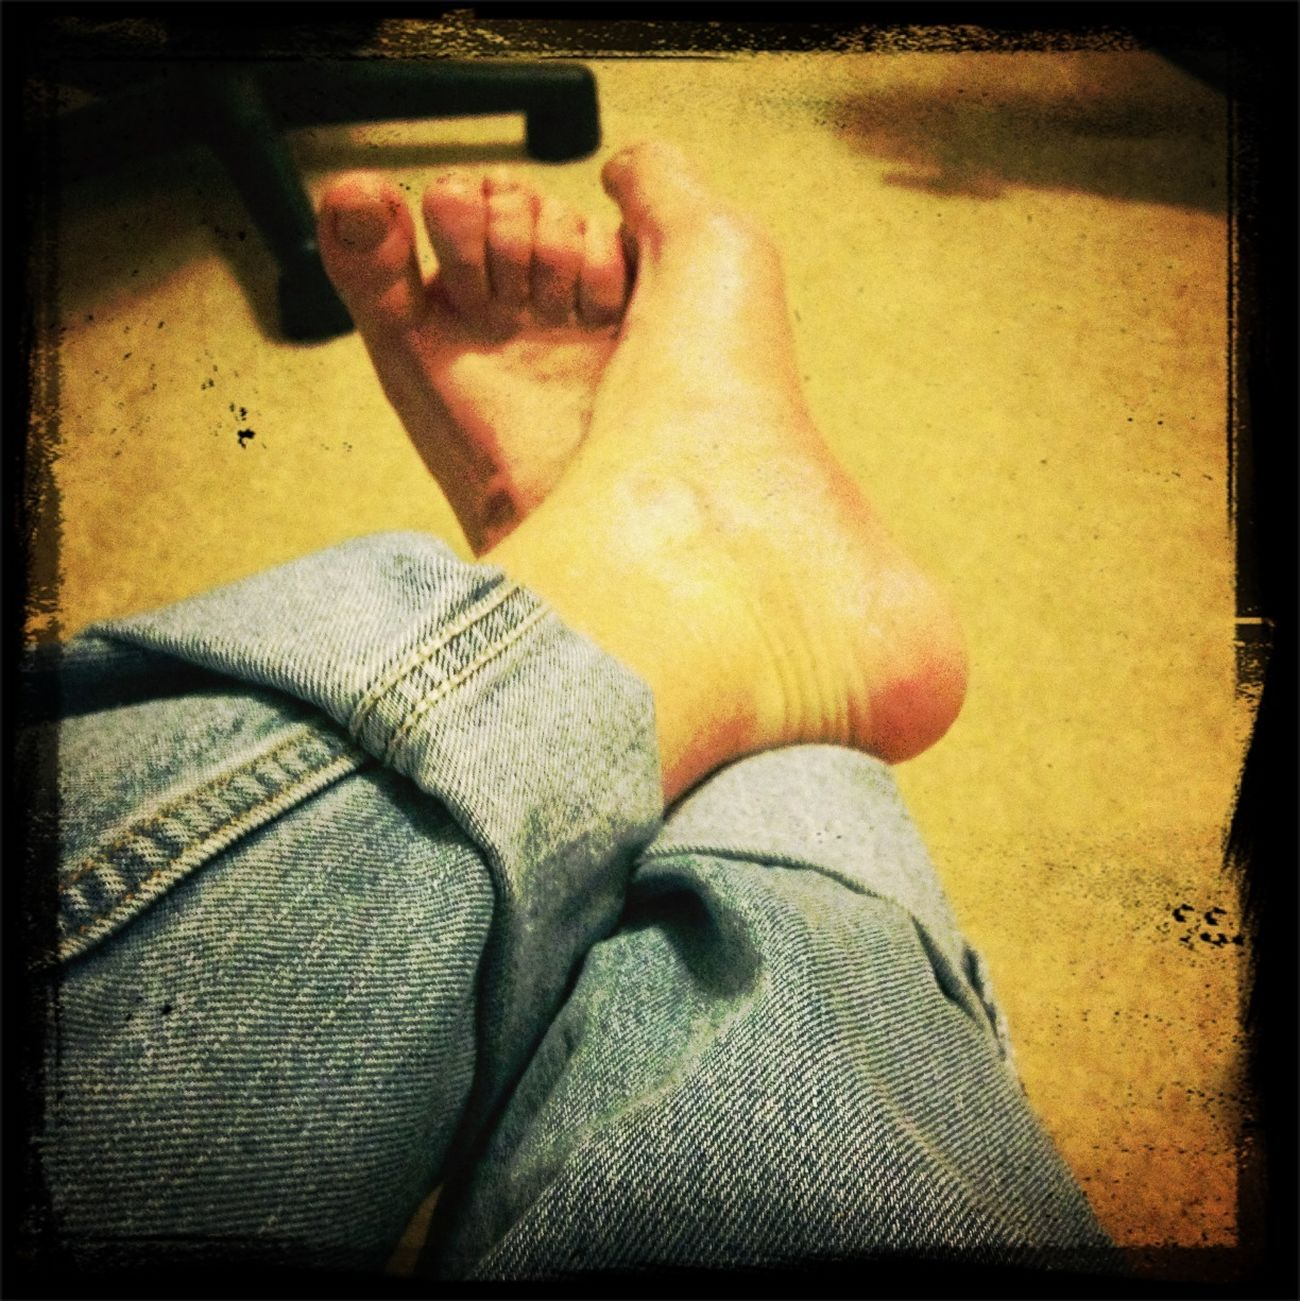 My Feet Are Awesome